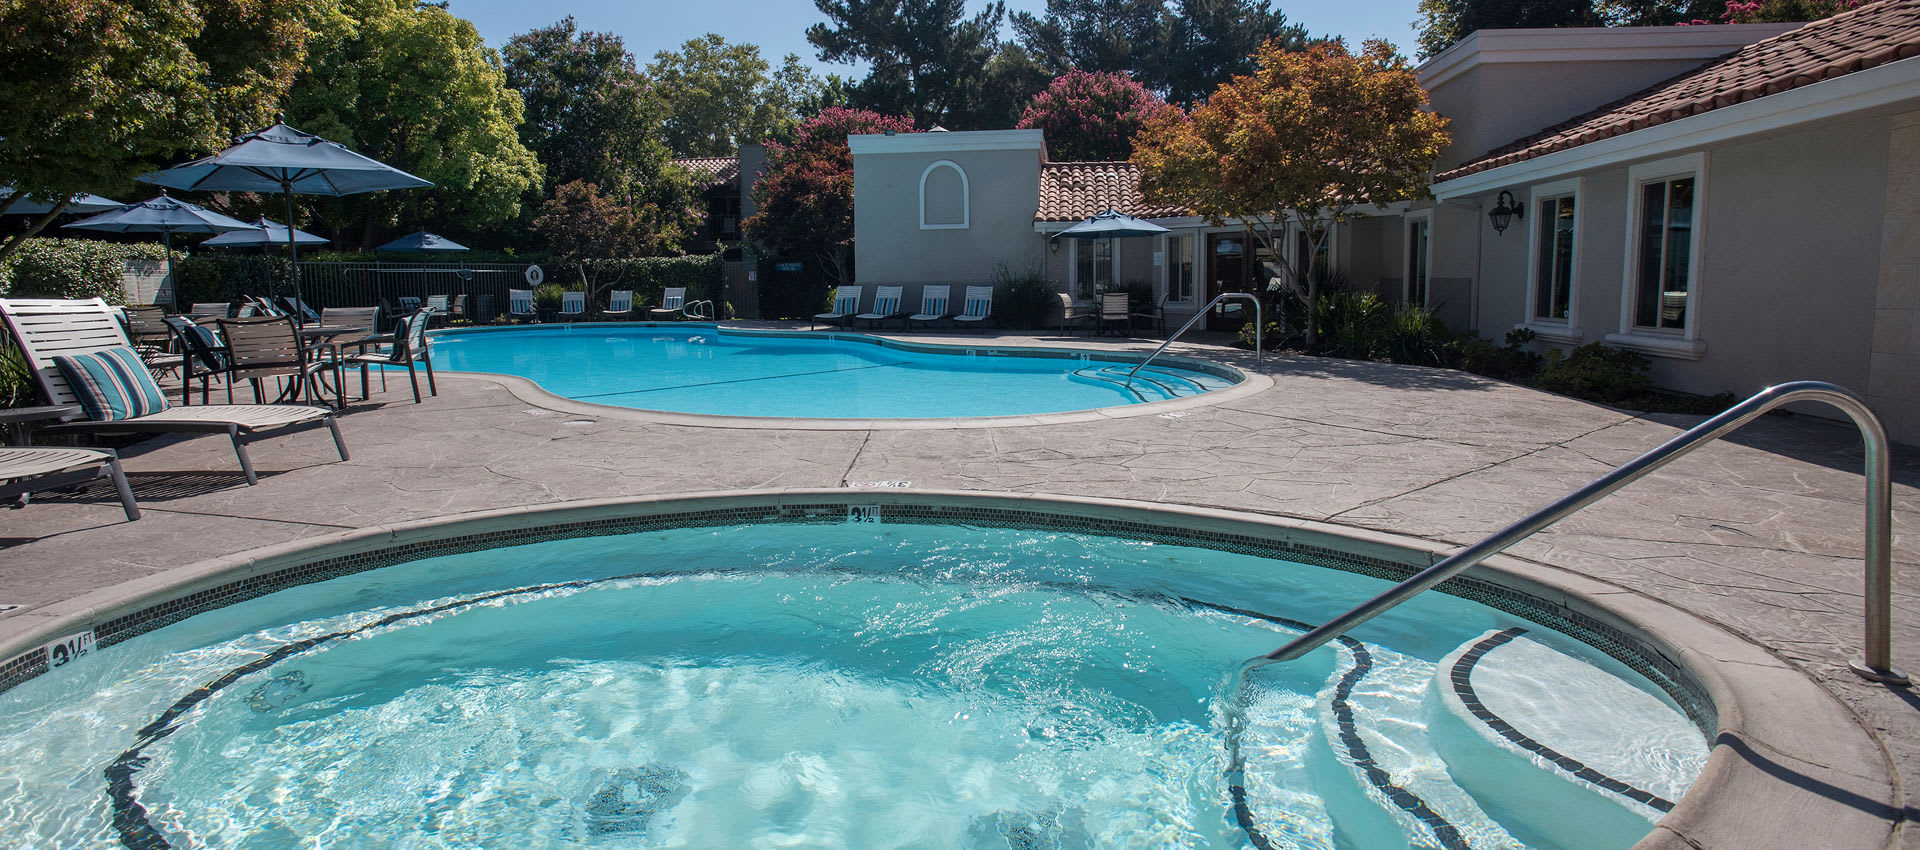 Swimming pool and hot tub at La Valencia Apartment Homes in Campbell, California